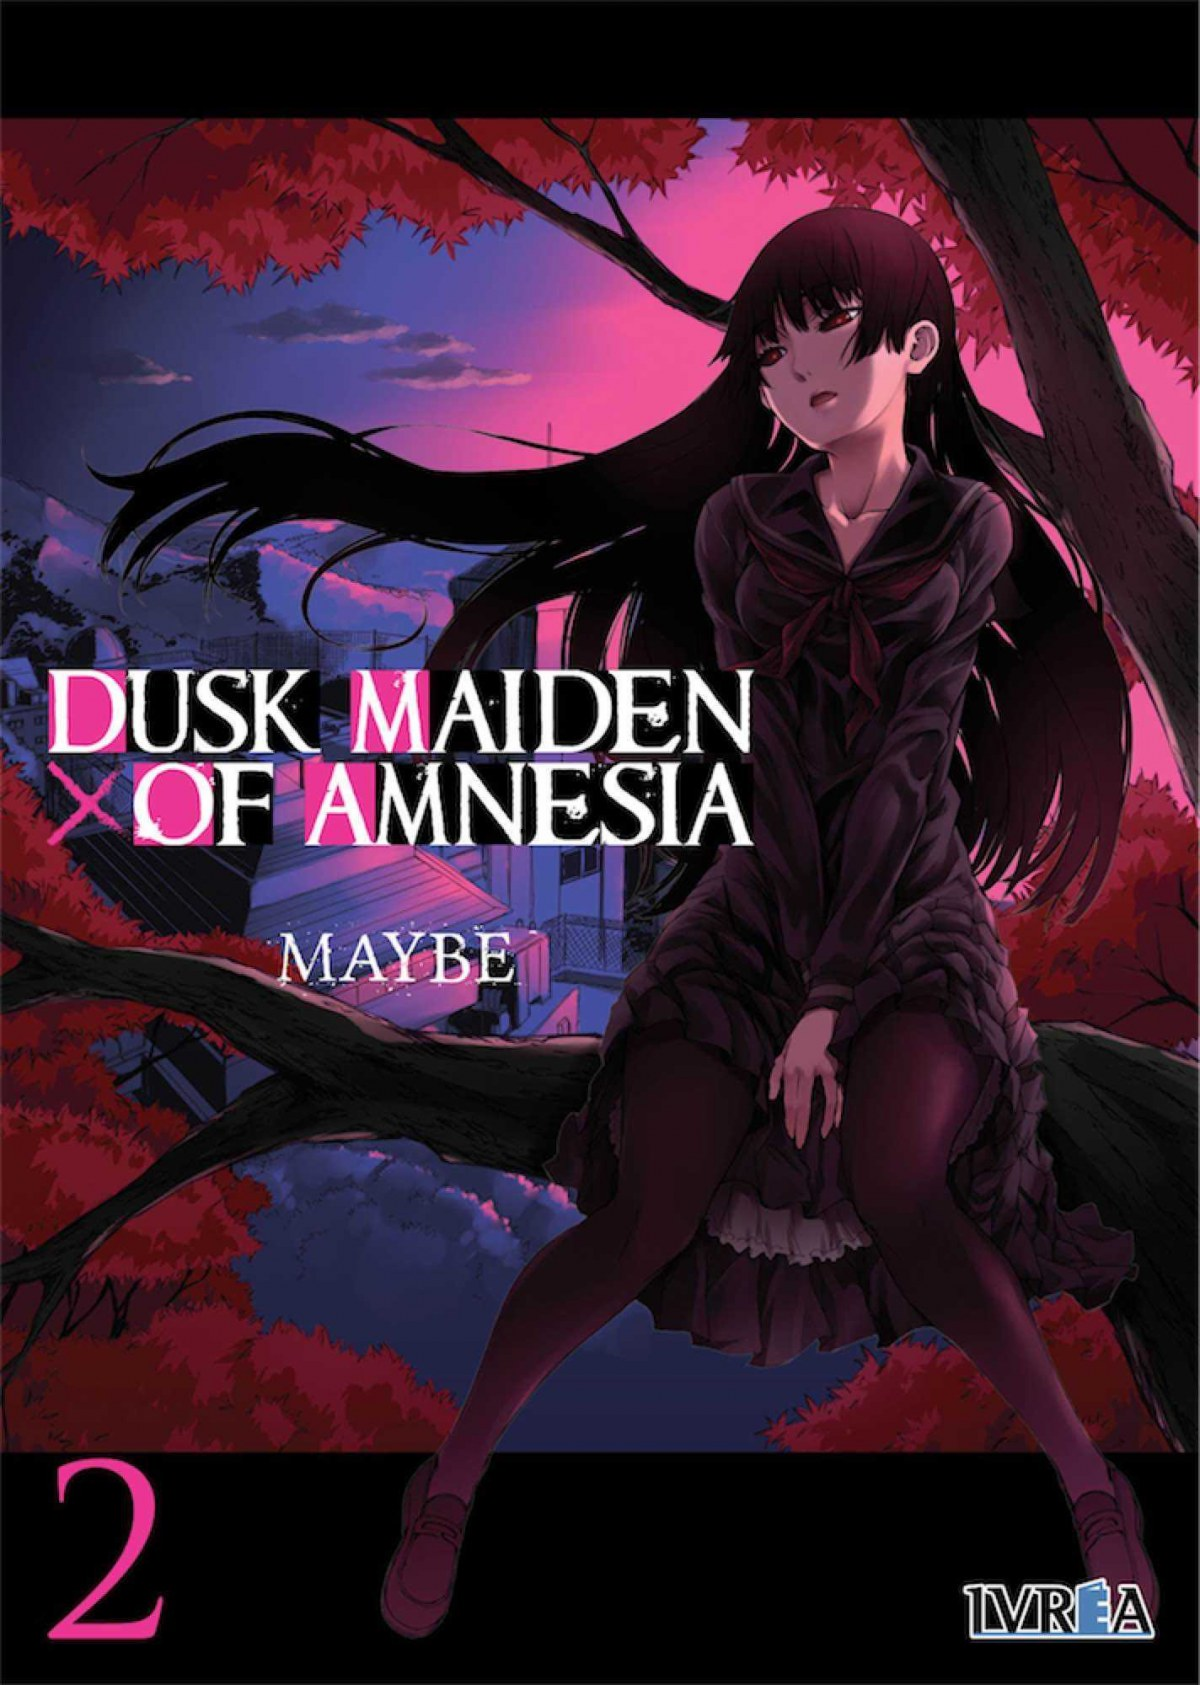 DUSK MAIDEN OF AMNESIA 2